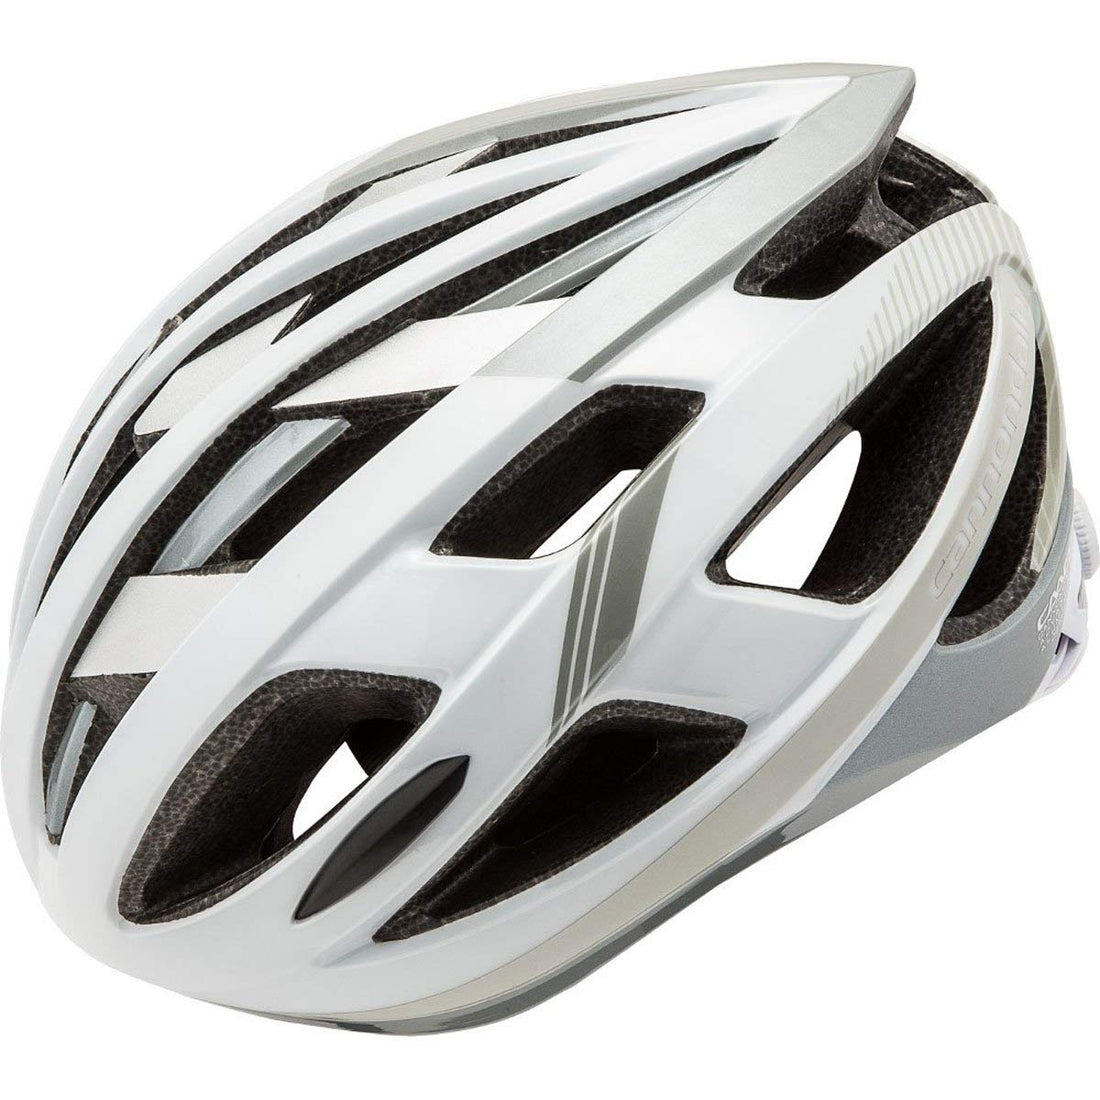 CANNONDALE QUICK HELMET White/Silver Small/Medium